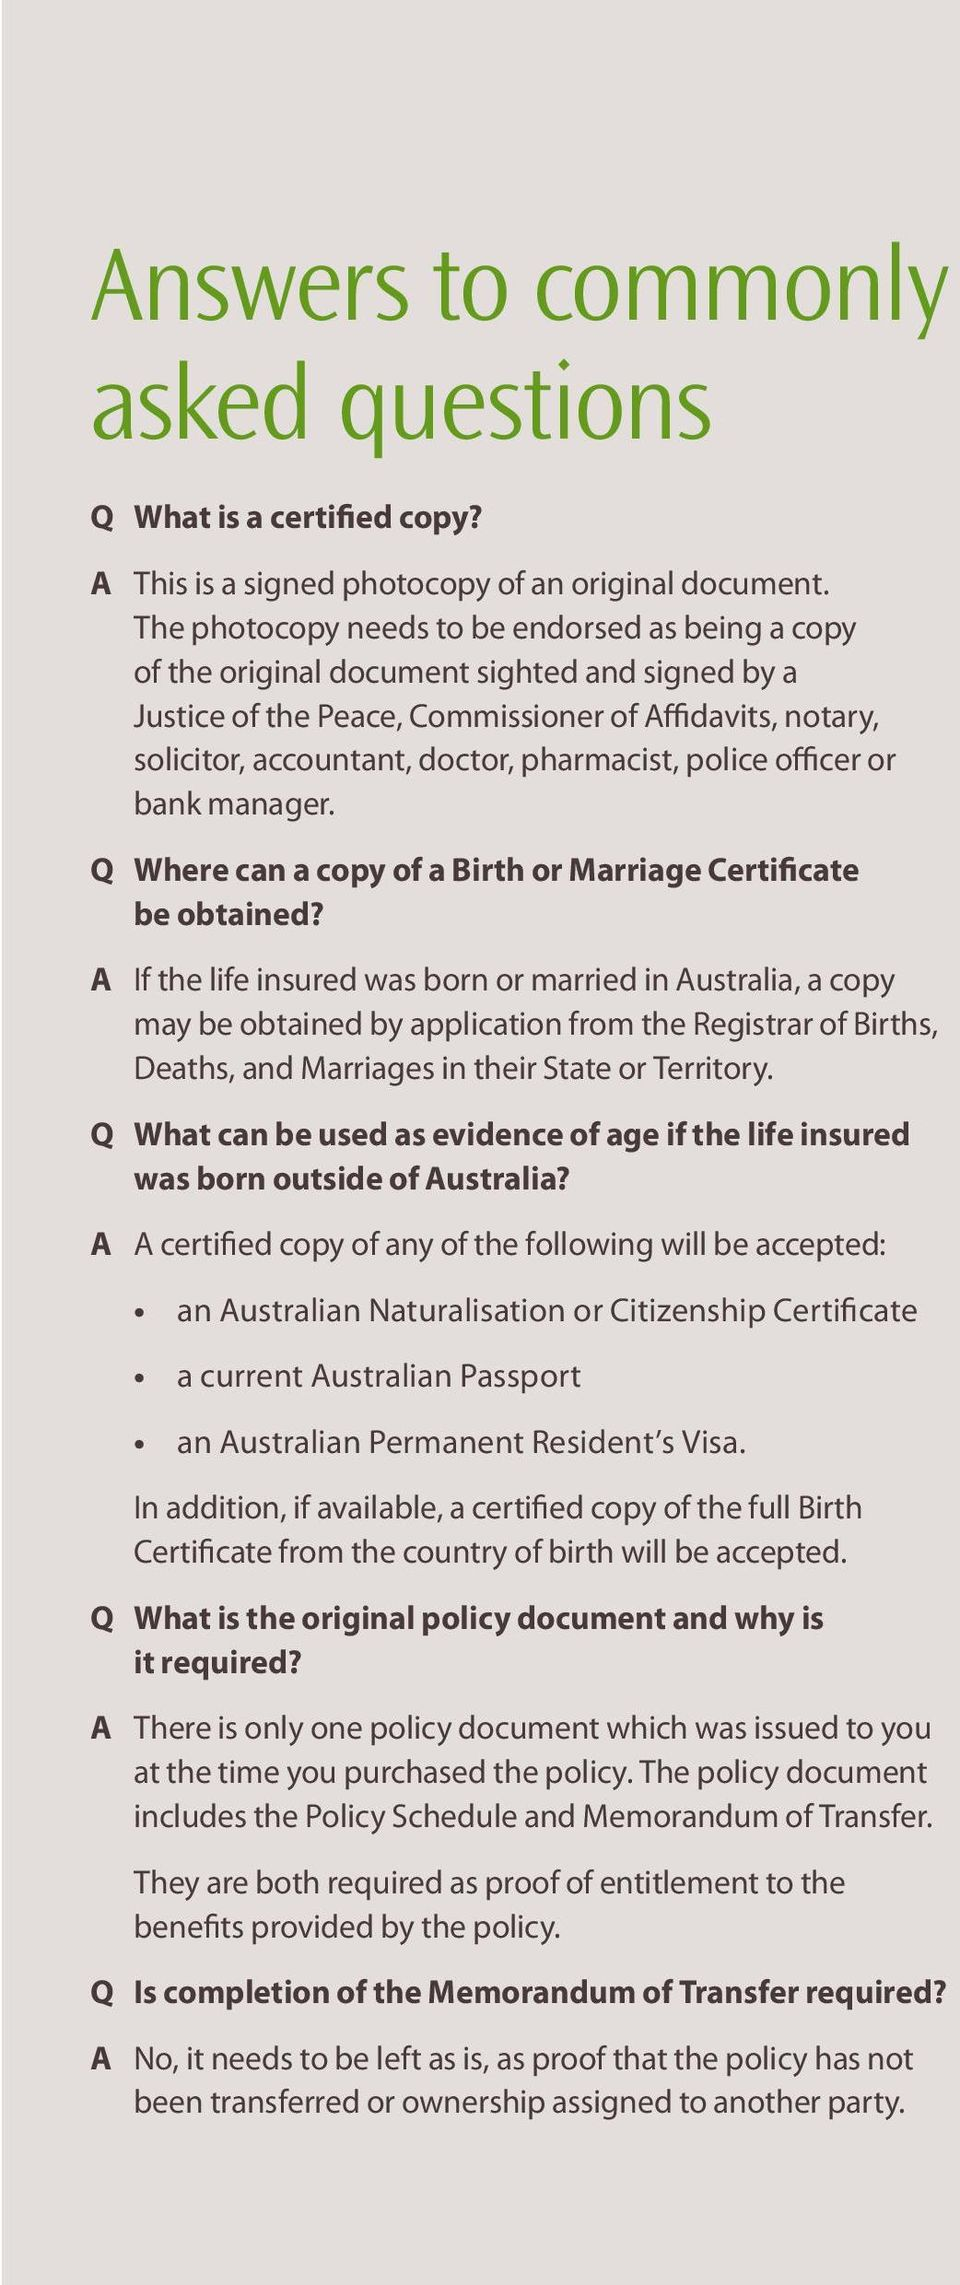 pharmacist, police officer or bank manager. Q Where can a copy of a Birth or Marriage Certificate be obtained?